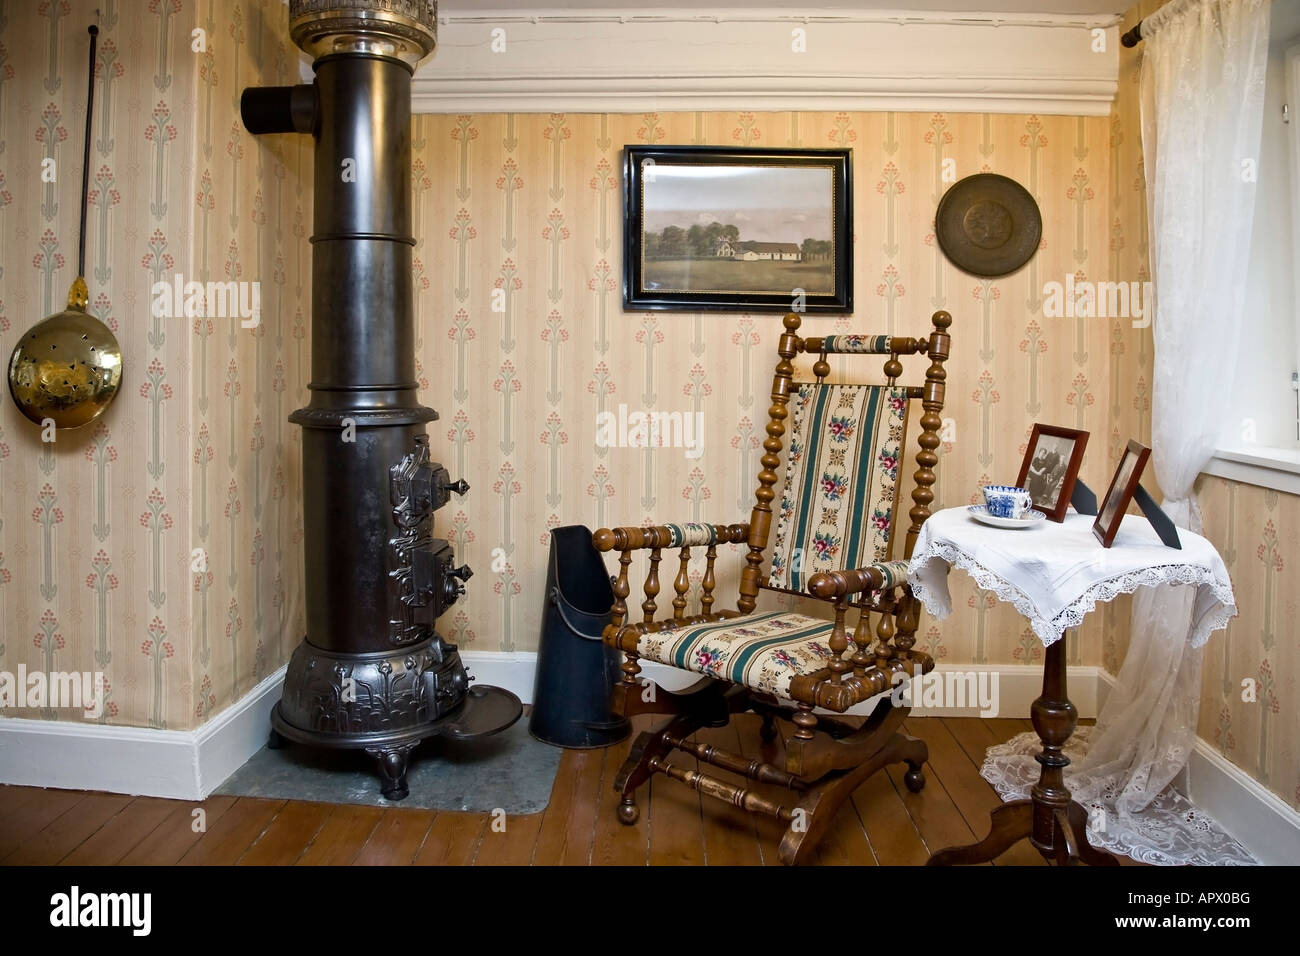 Old rocking chair at the woodburning stove - Stock Image